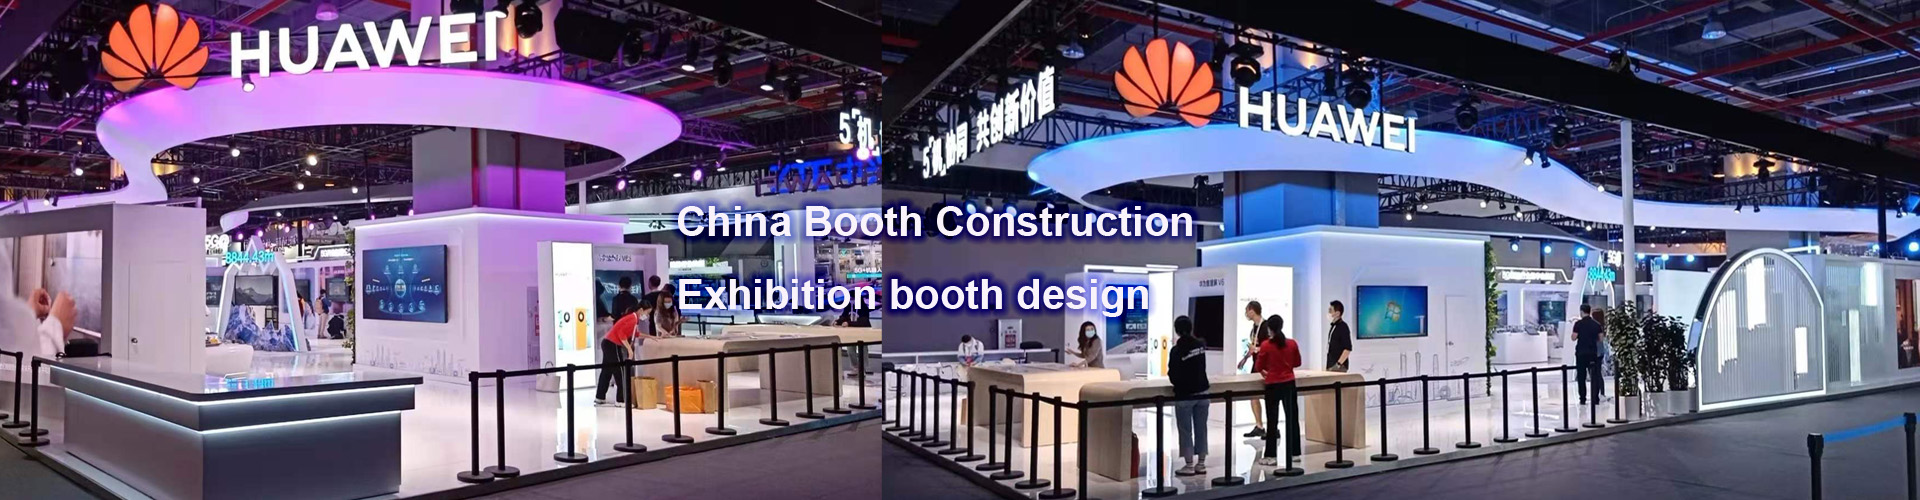 Huawei exhibition booth design China